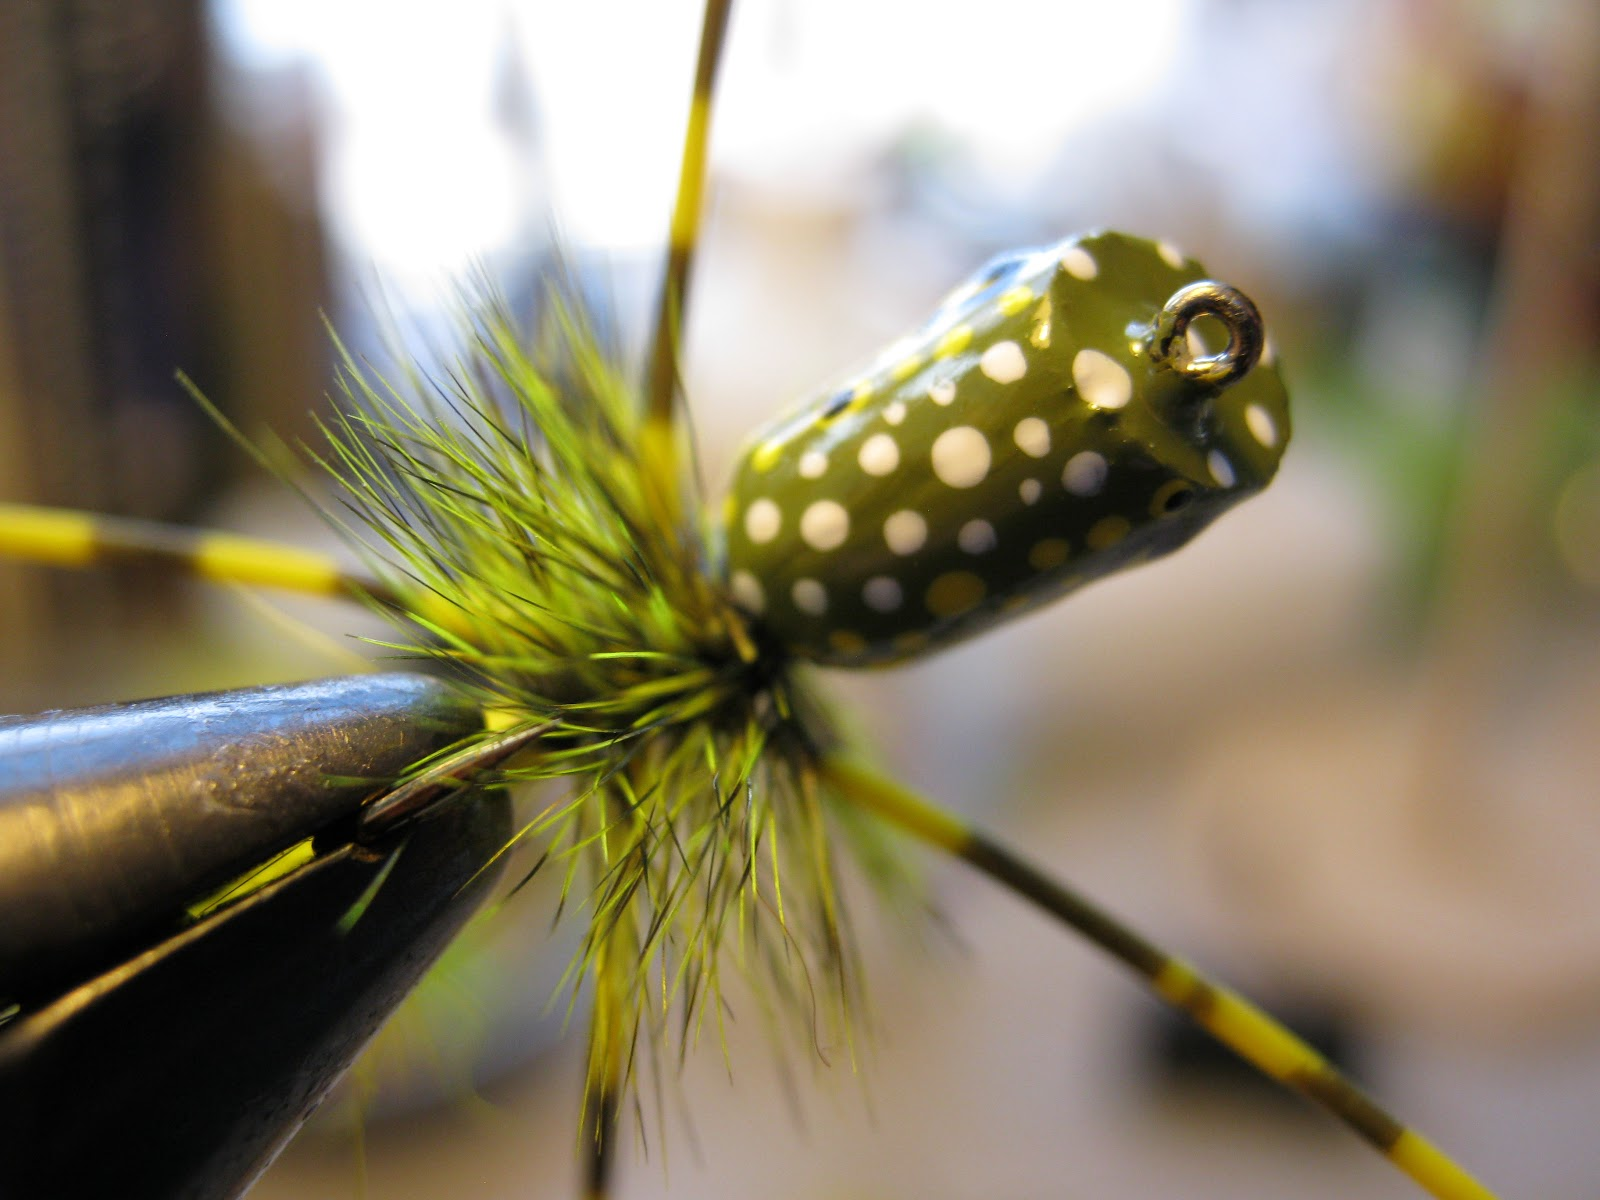 Fly fishing tying obsessed sbs for a frog popper for Fly fishing poppers